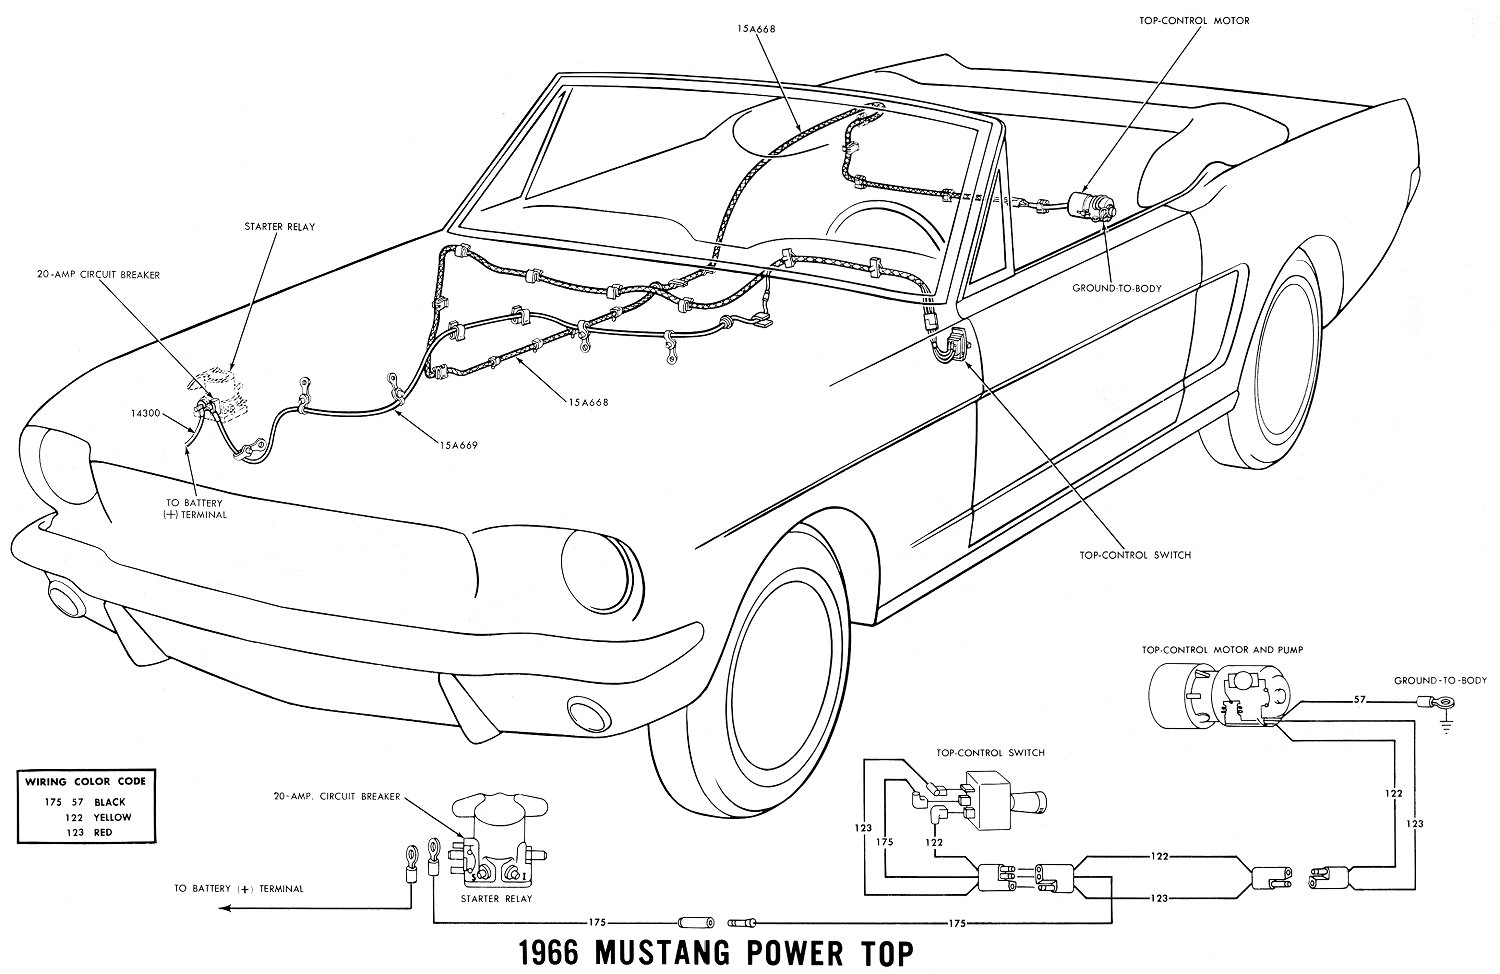 1966 mustang wiring diagrams - average joe restoration 1966 mustang fuel gauge wiring 1966 mustang flasher diagram wiring schematic